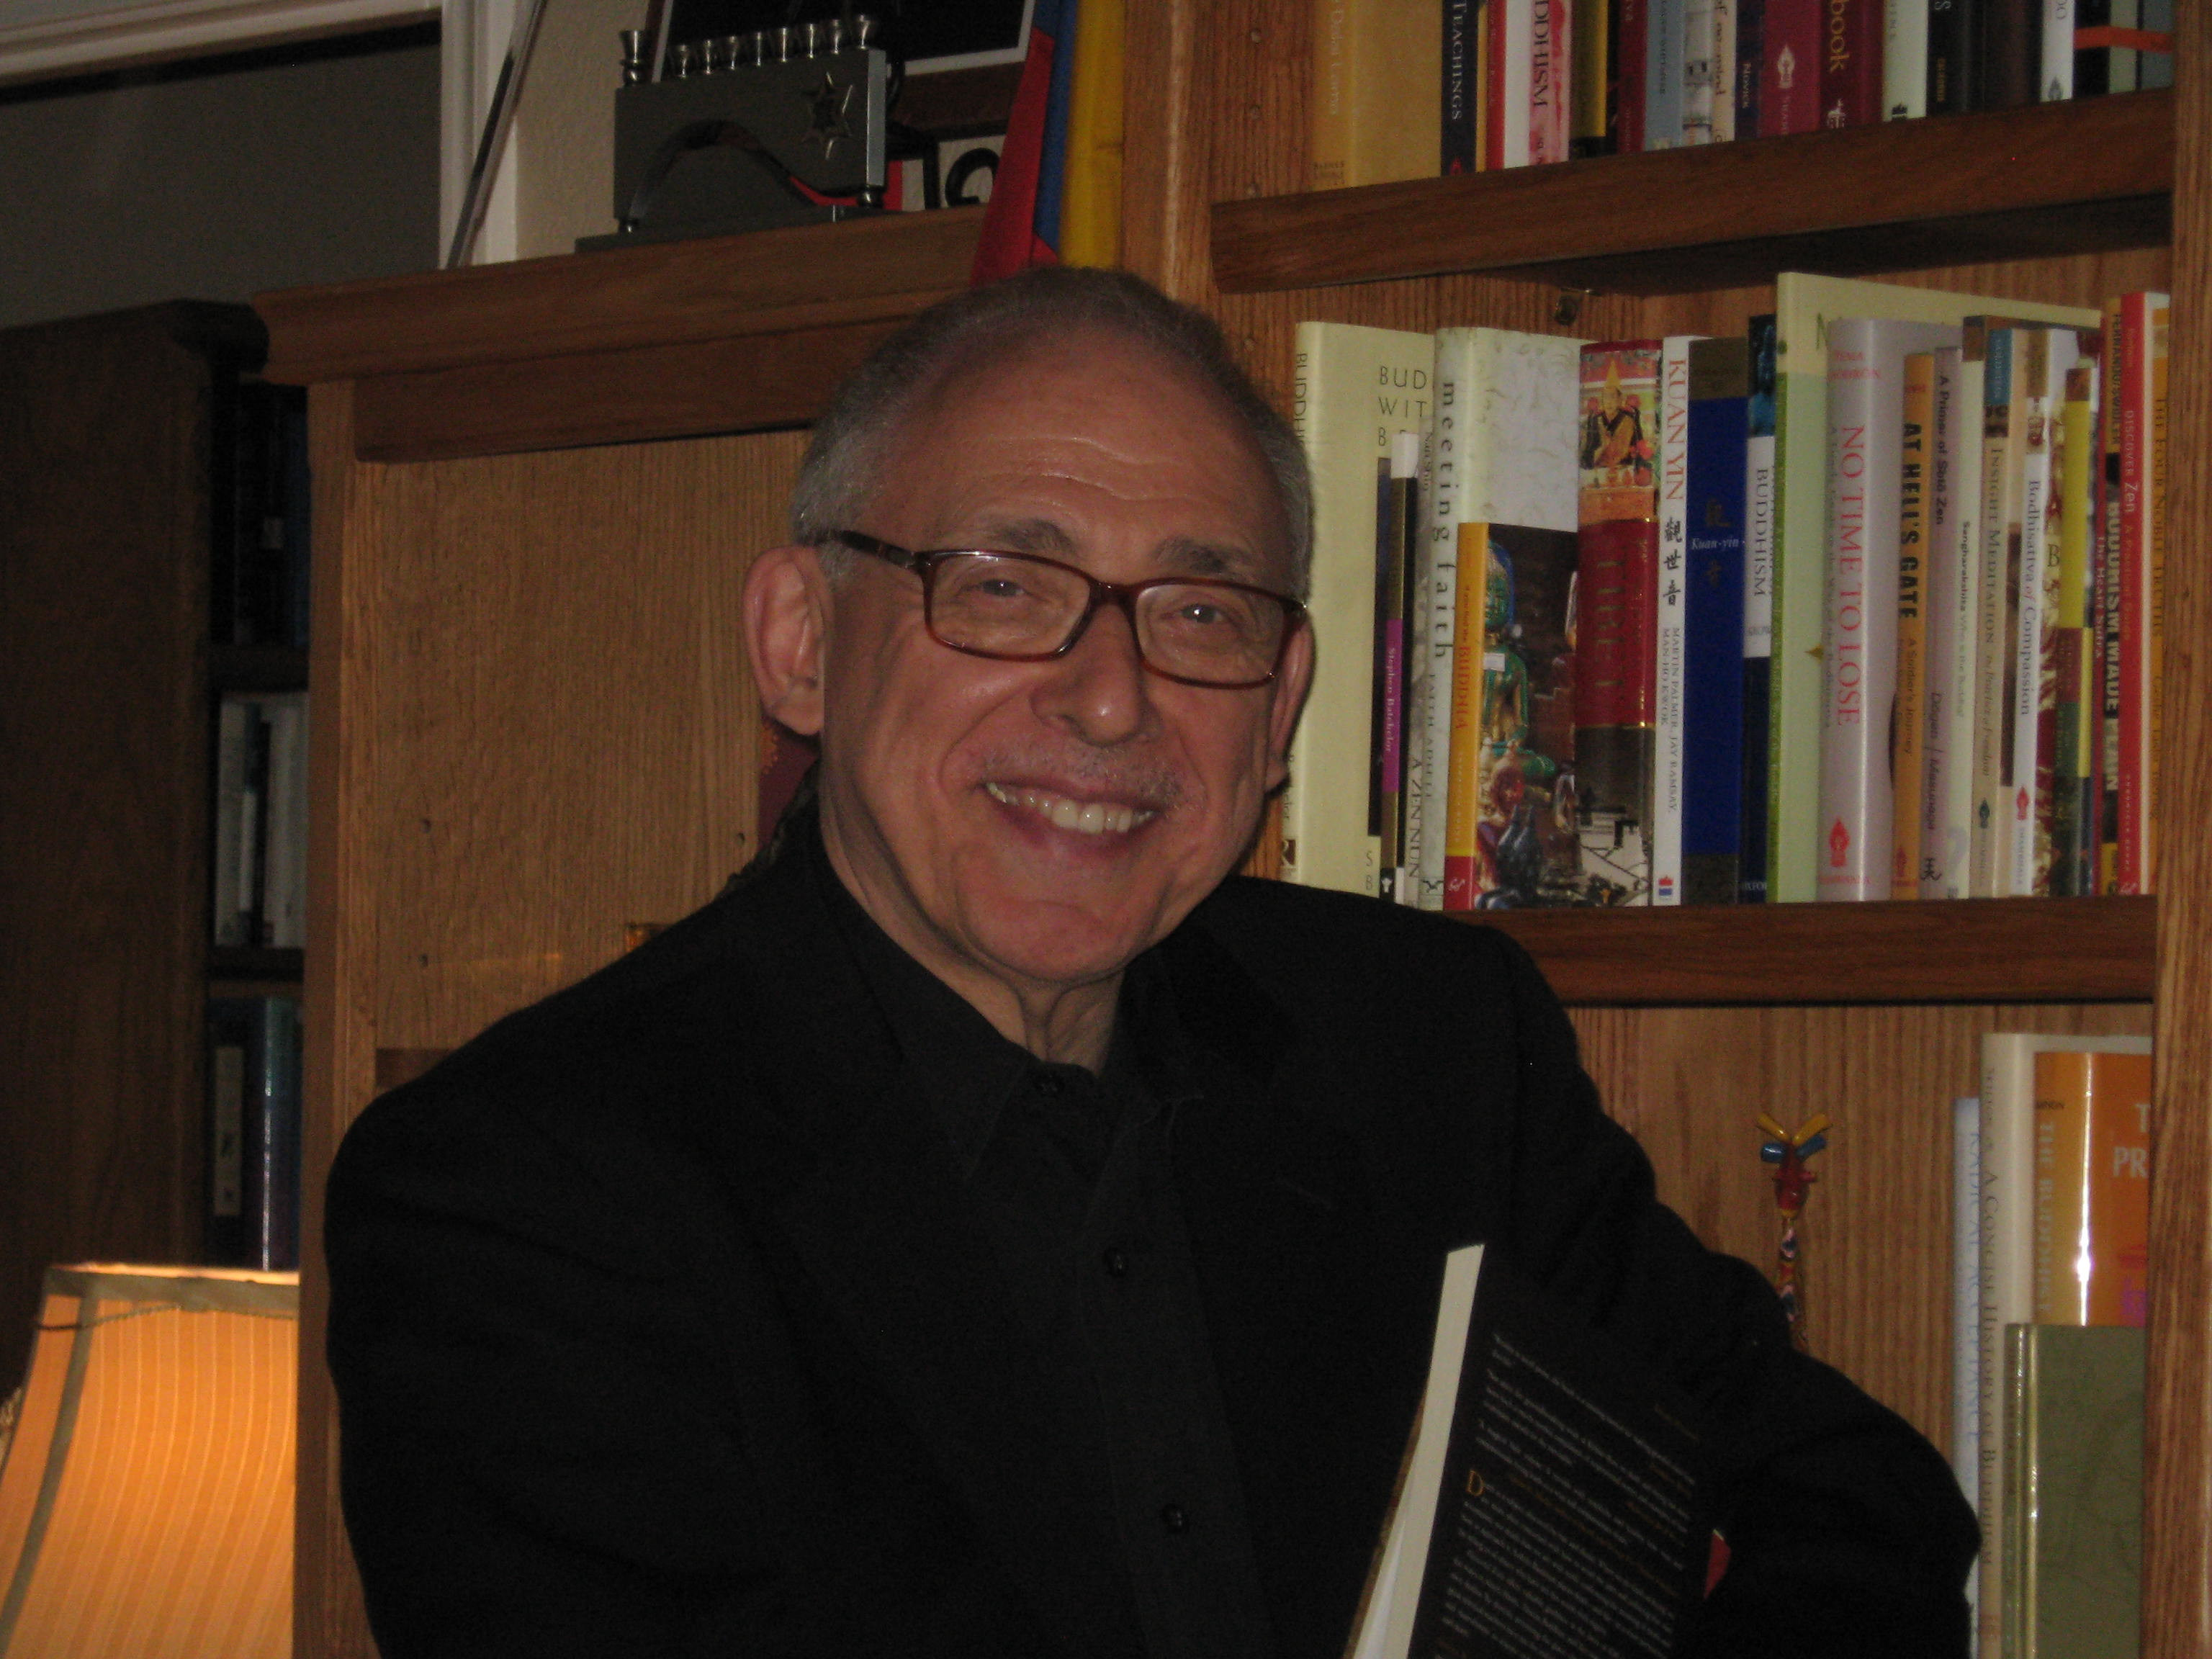 Priest Tom Bonacci